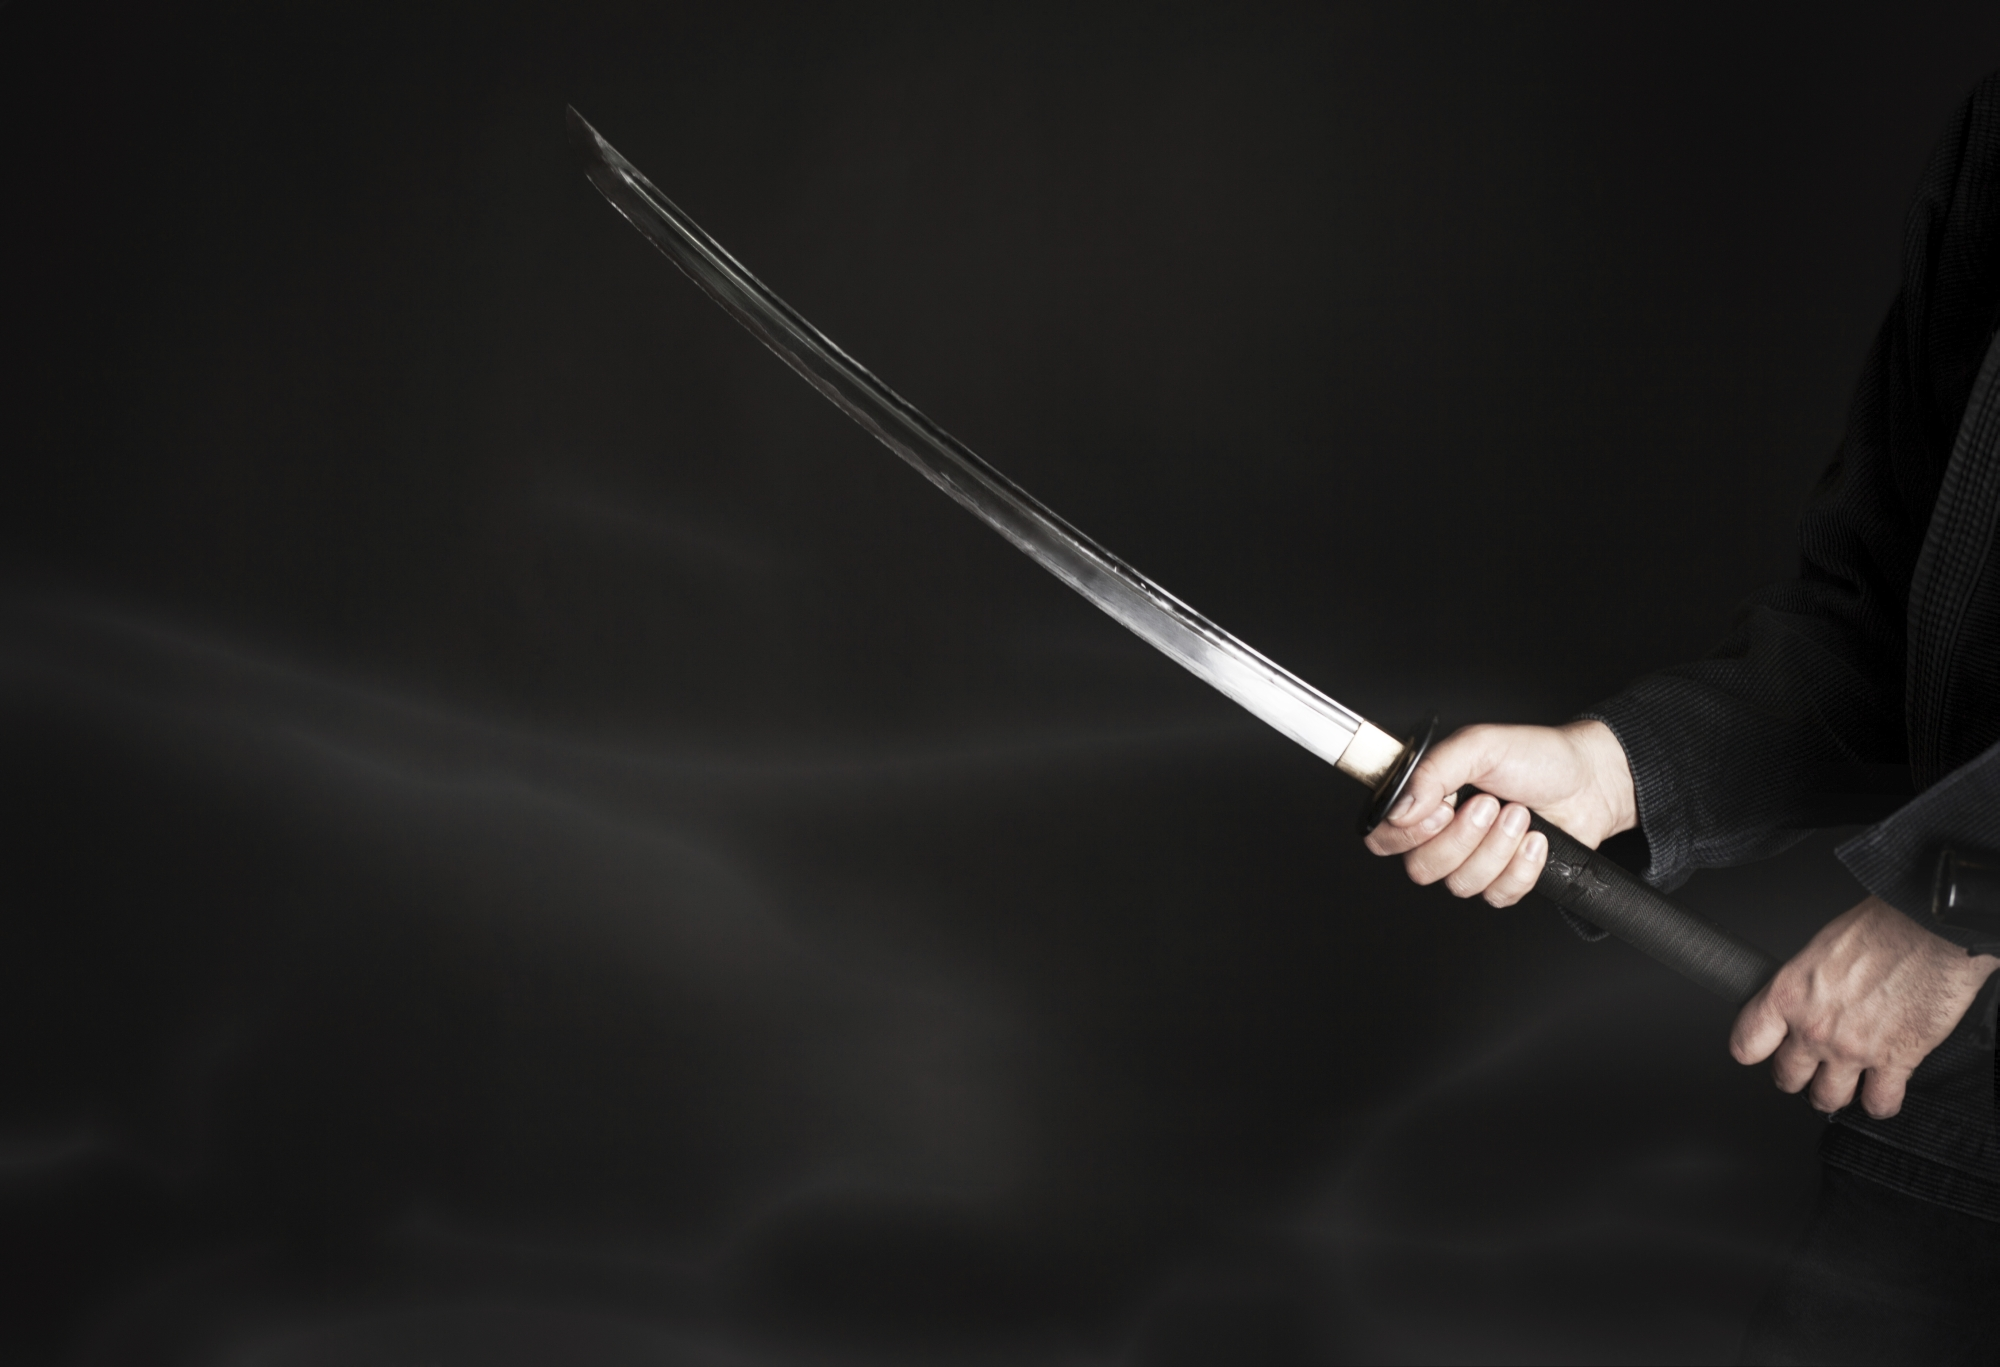 A man allegedly threatened residents with a sword.